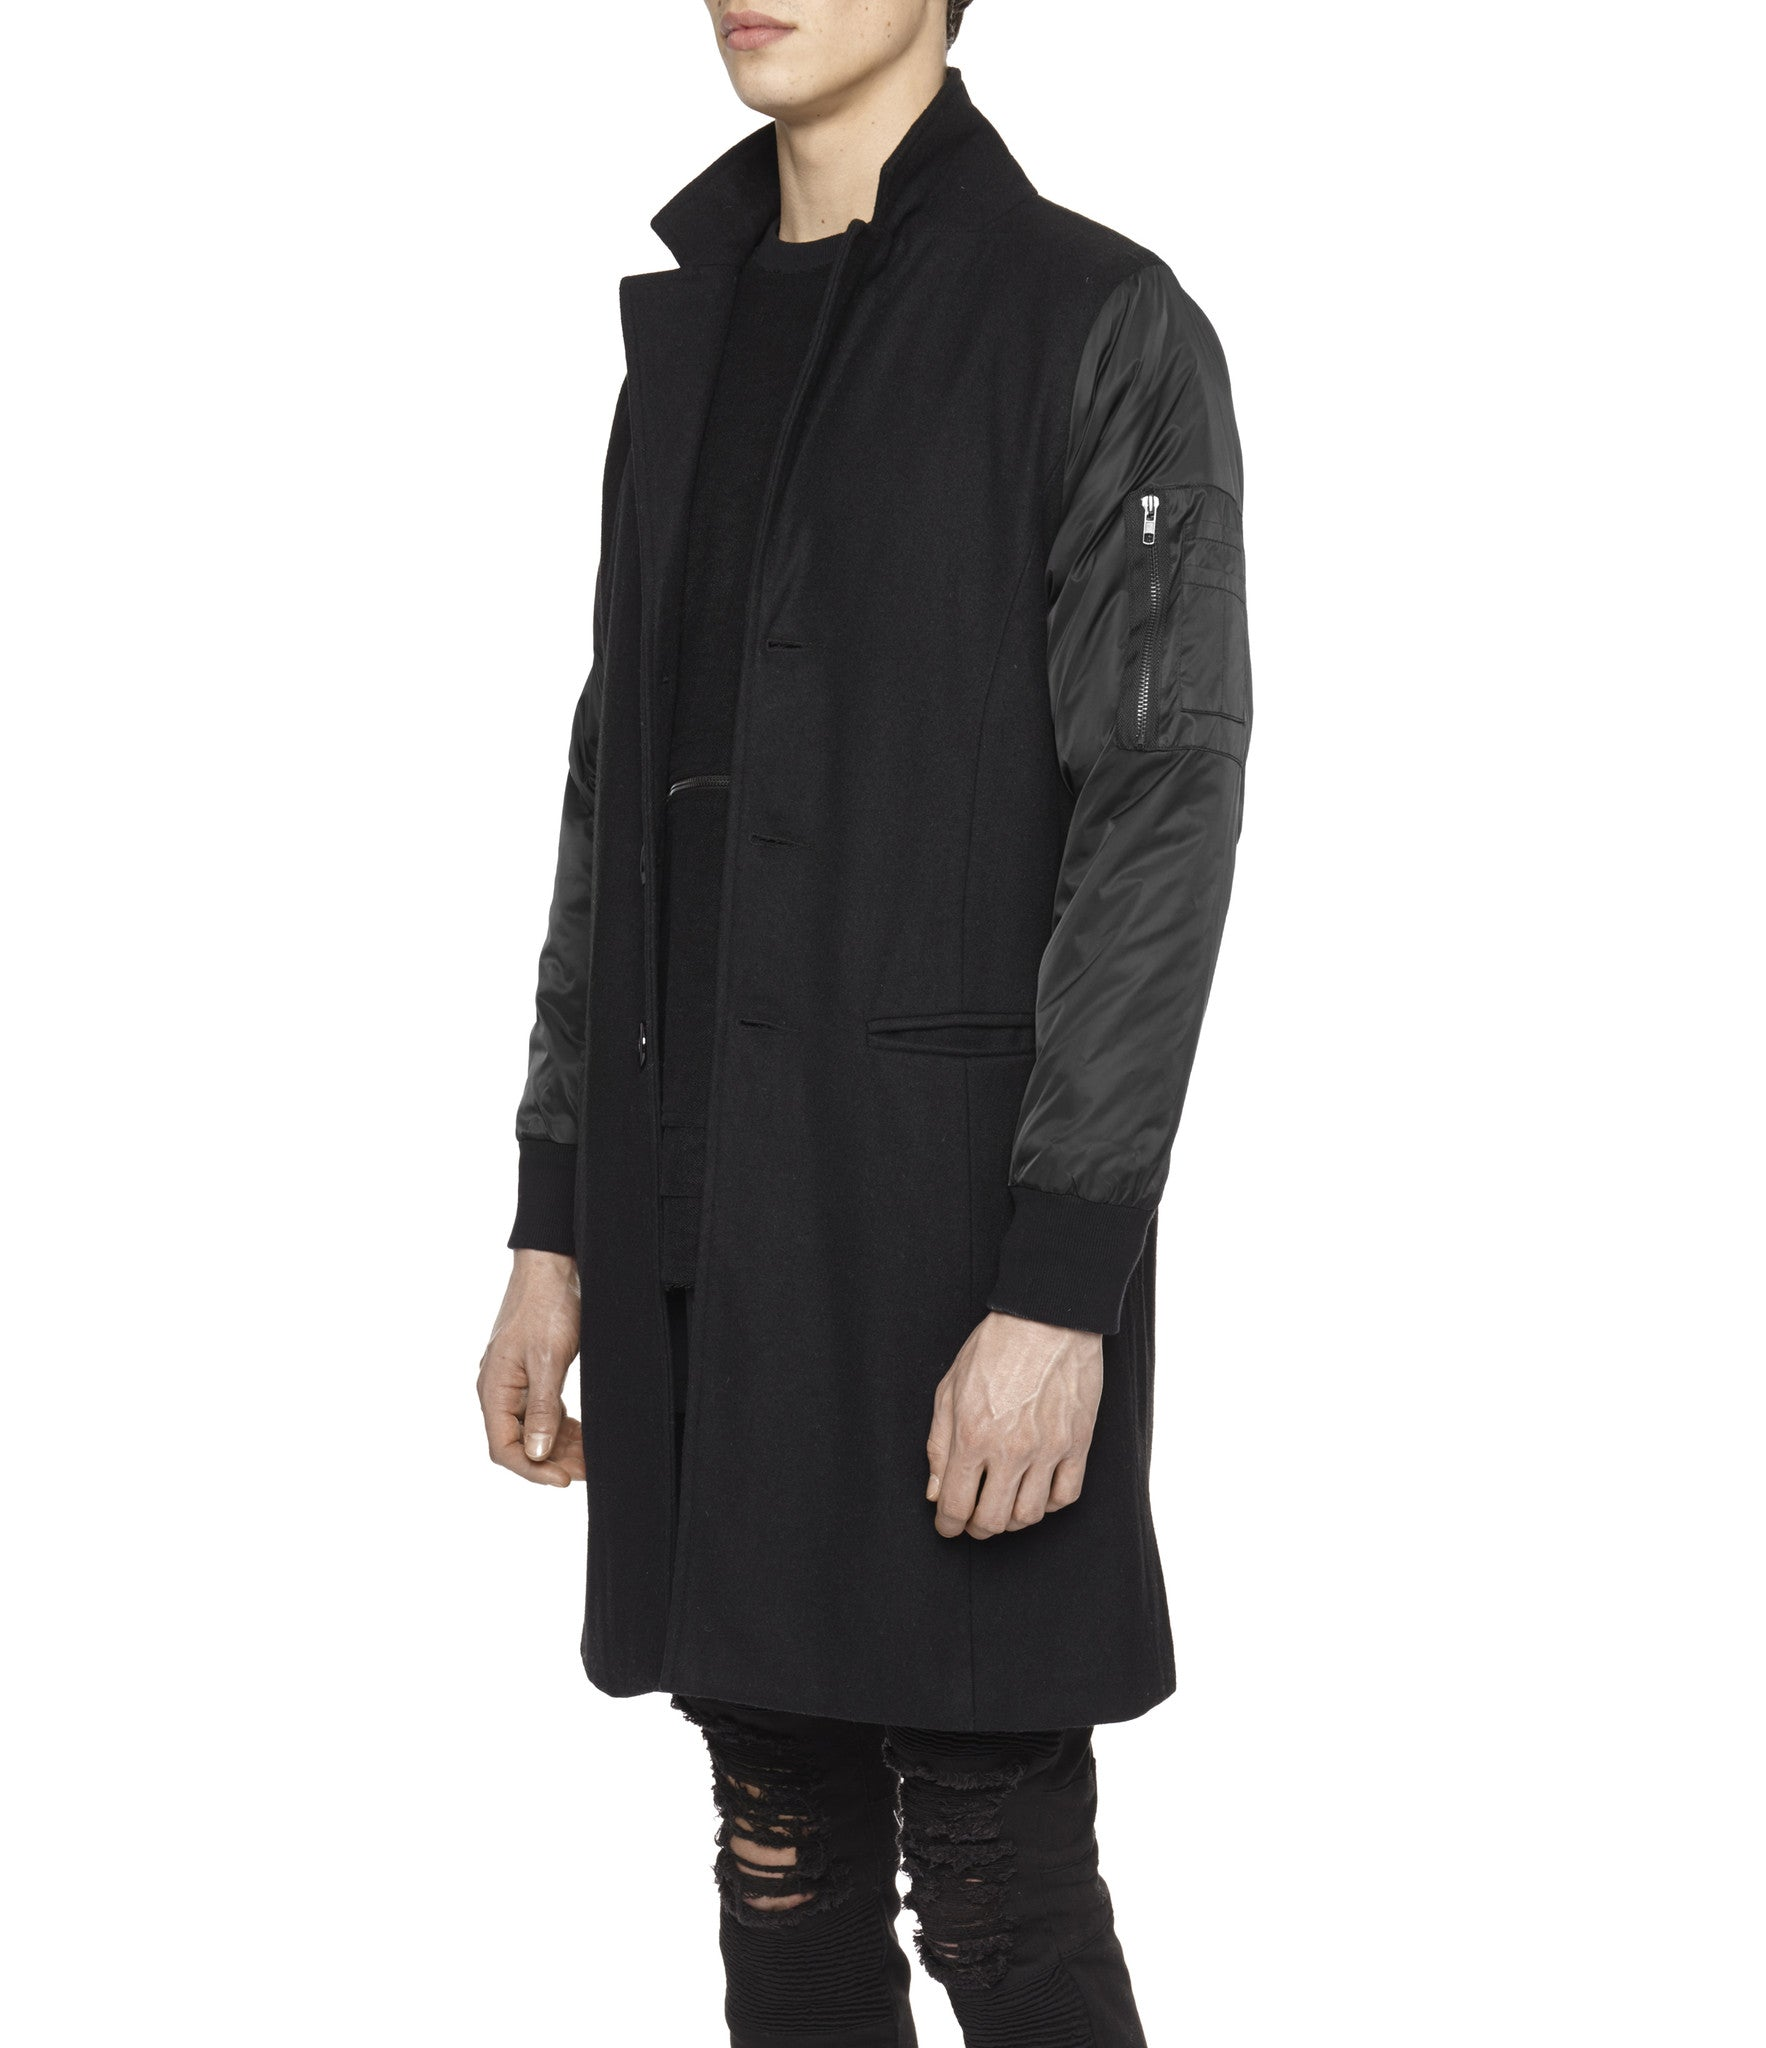 JK215 Hybrid Overcoat - Black - underated london - underatedco - 4